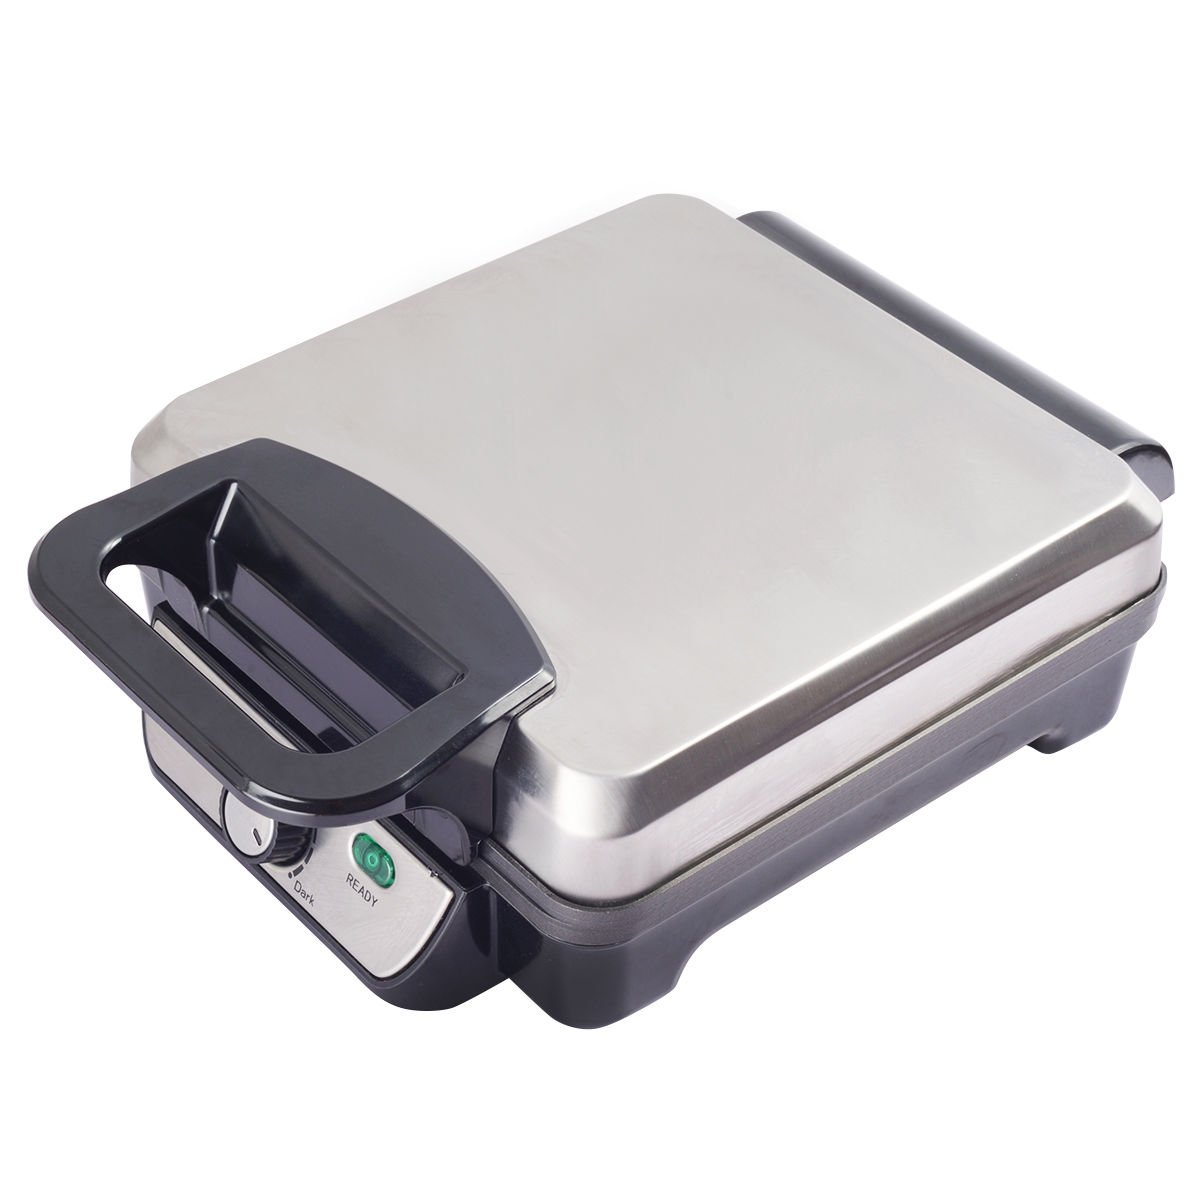 Costway Flip Belgian Waffle Maker Non Stick Stainless Steel w/Removable Drip Tray (Square)